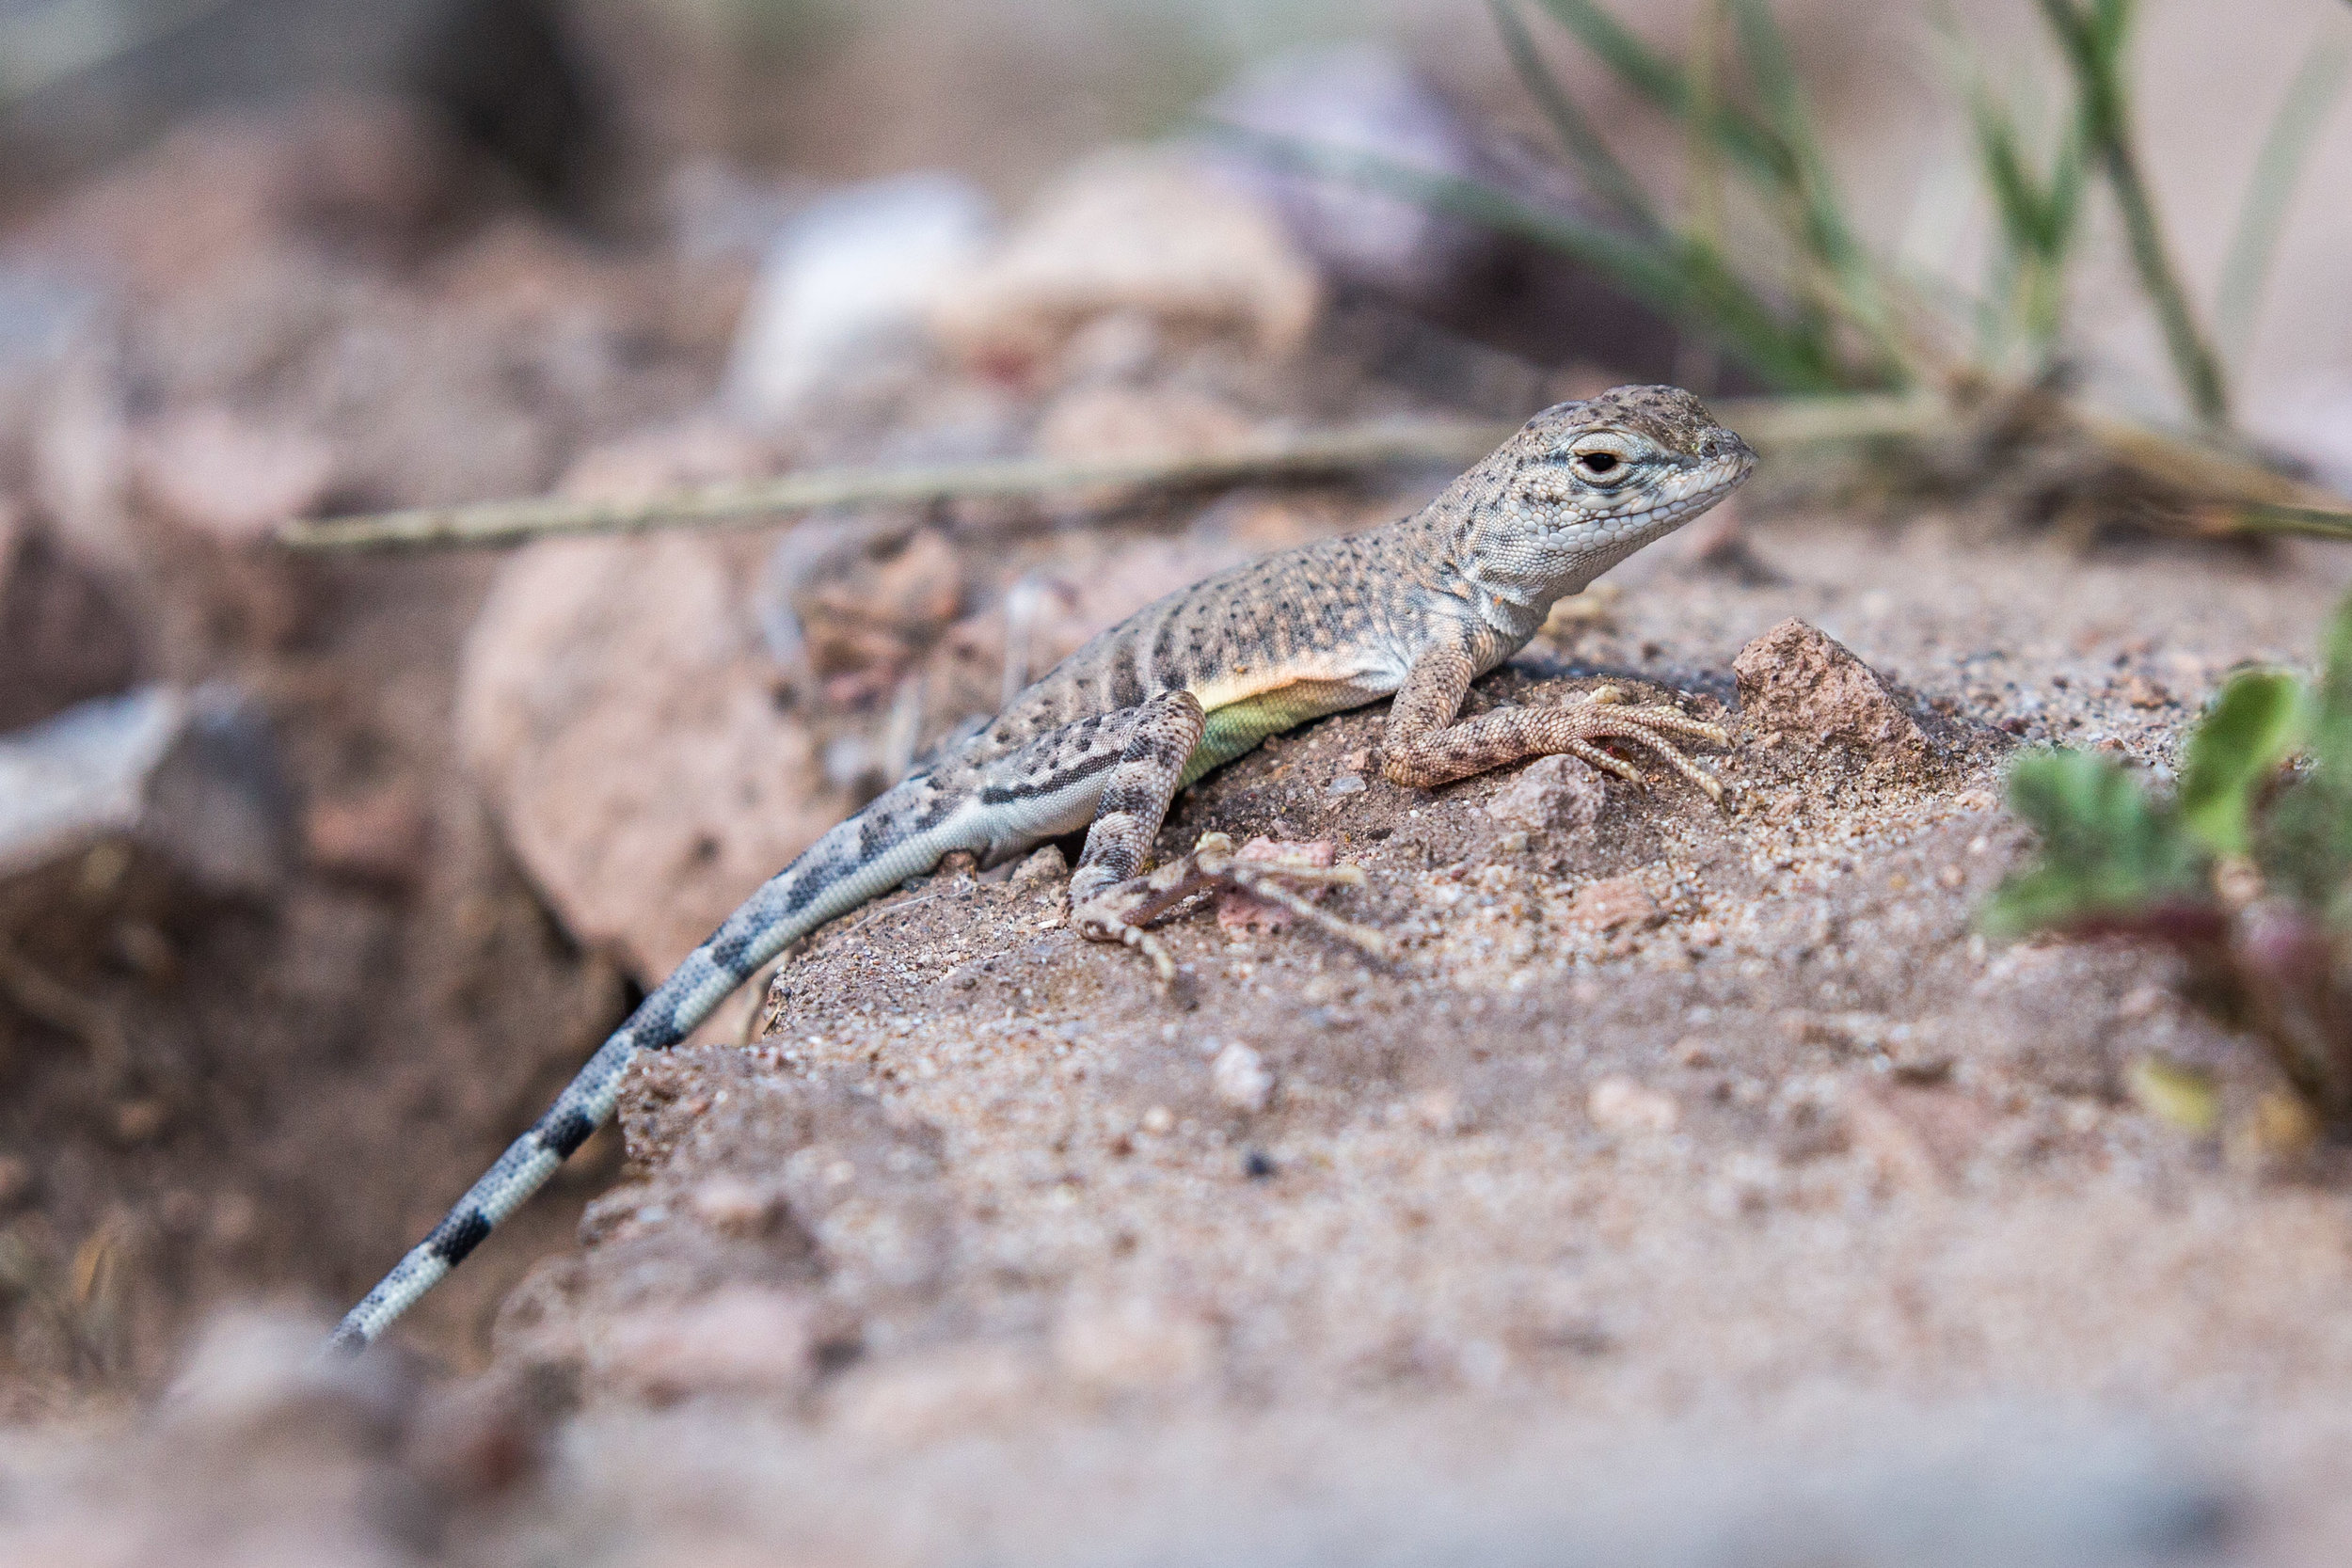 Southwestern Earless Lizard (Cophosaurus texanus scitulus) - Southwestern Earless Lizard at the Organ Mountains - Desert Peaks National Monument.